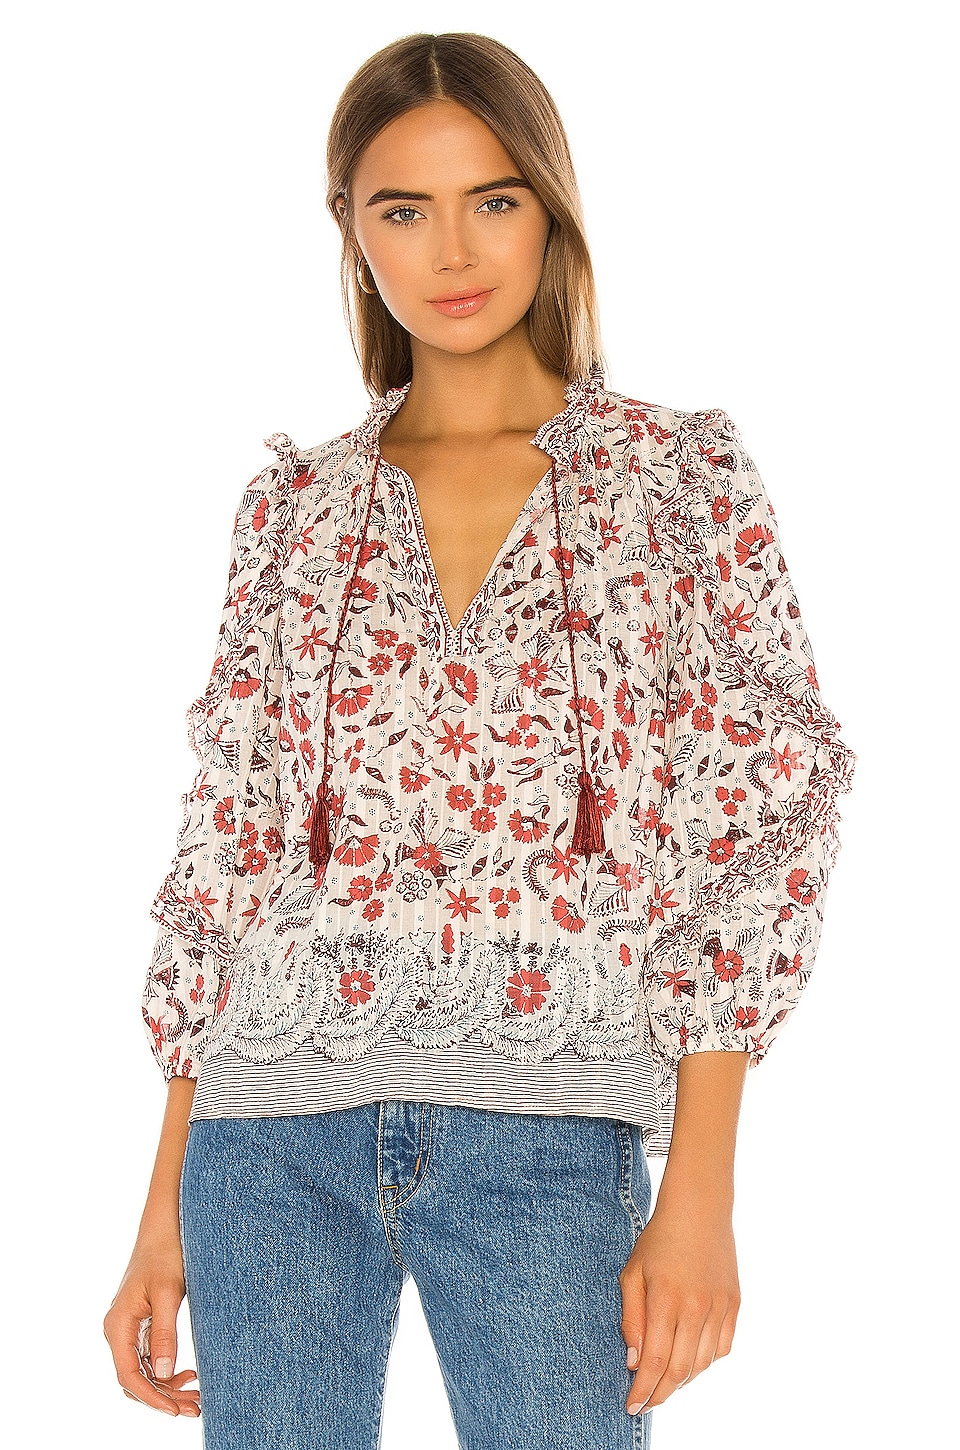 Ulla Johnson Azalea Blouse in Cream